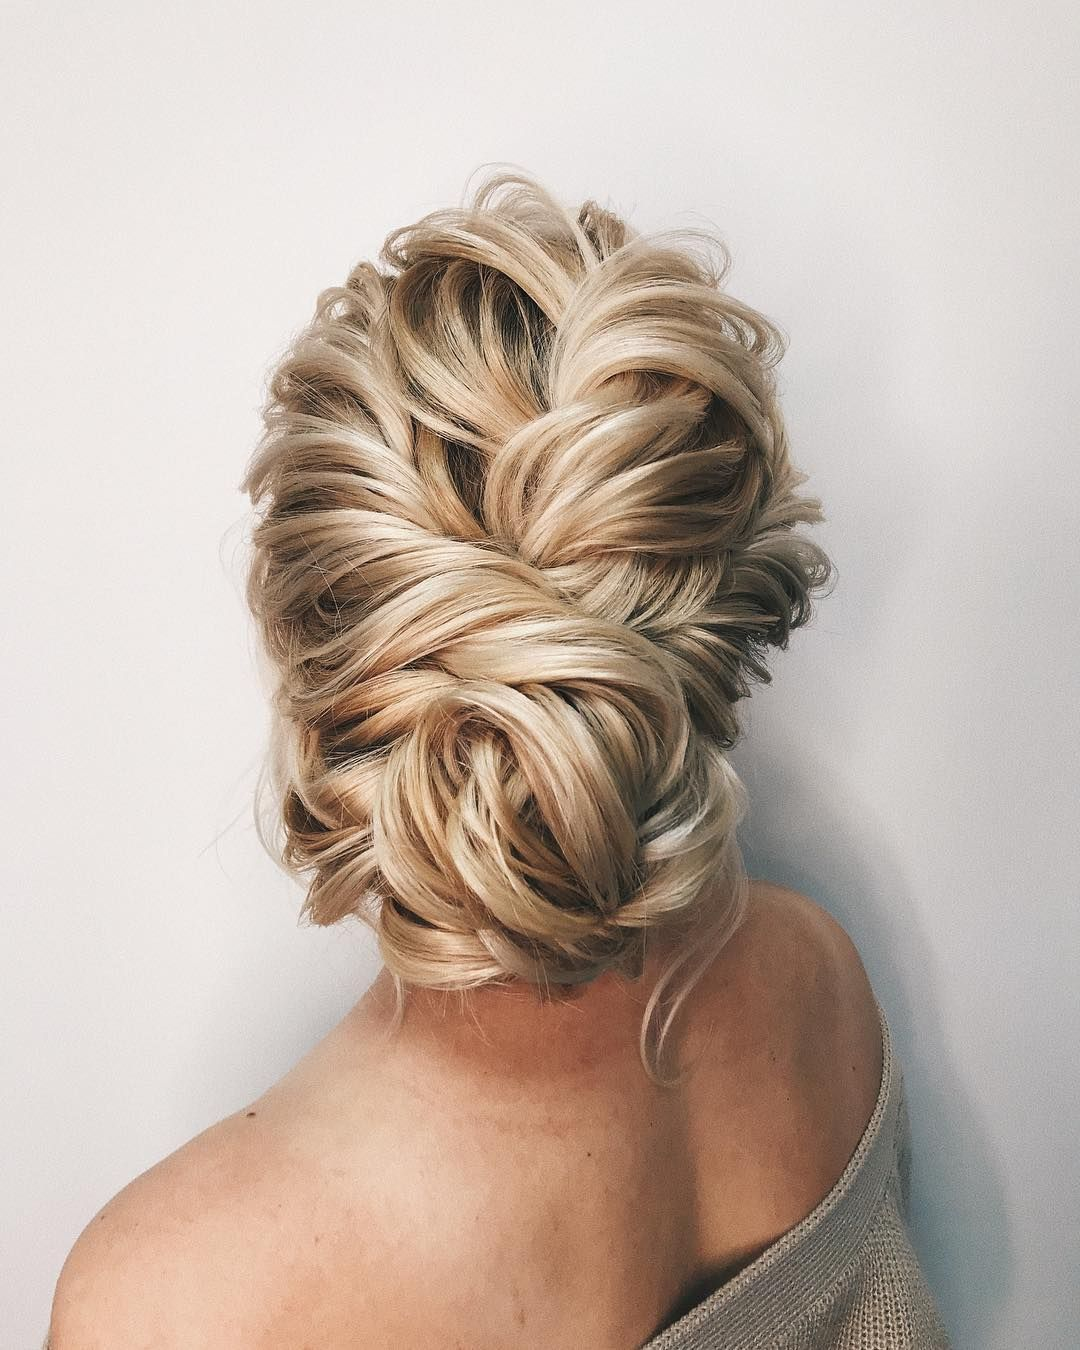 Previous next amazing updo hairstyle with the wow factor finding